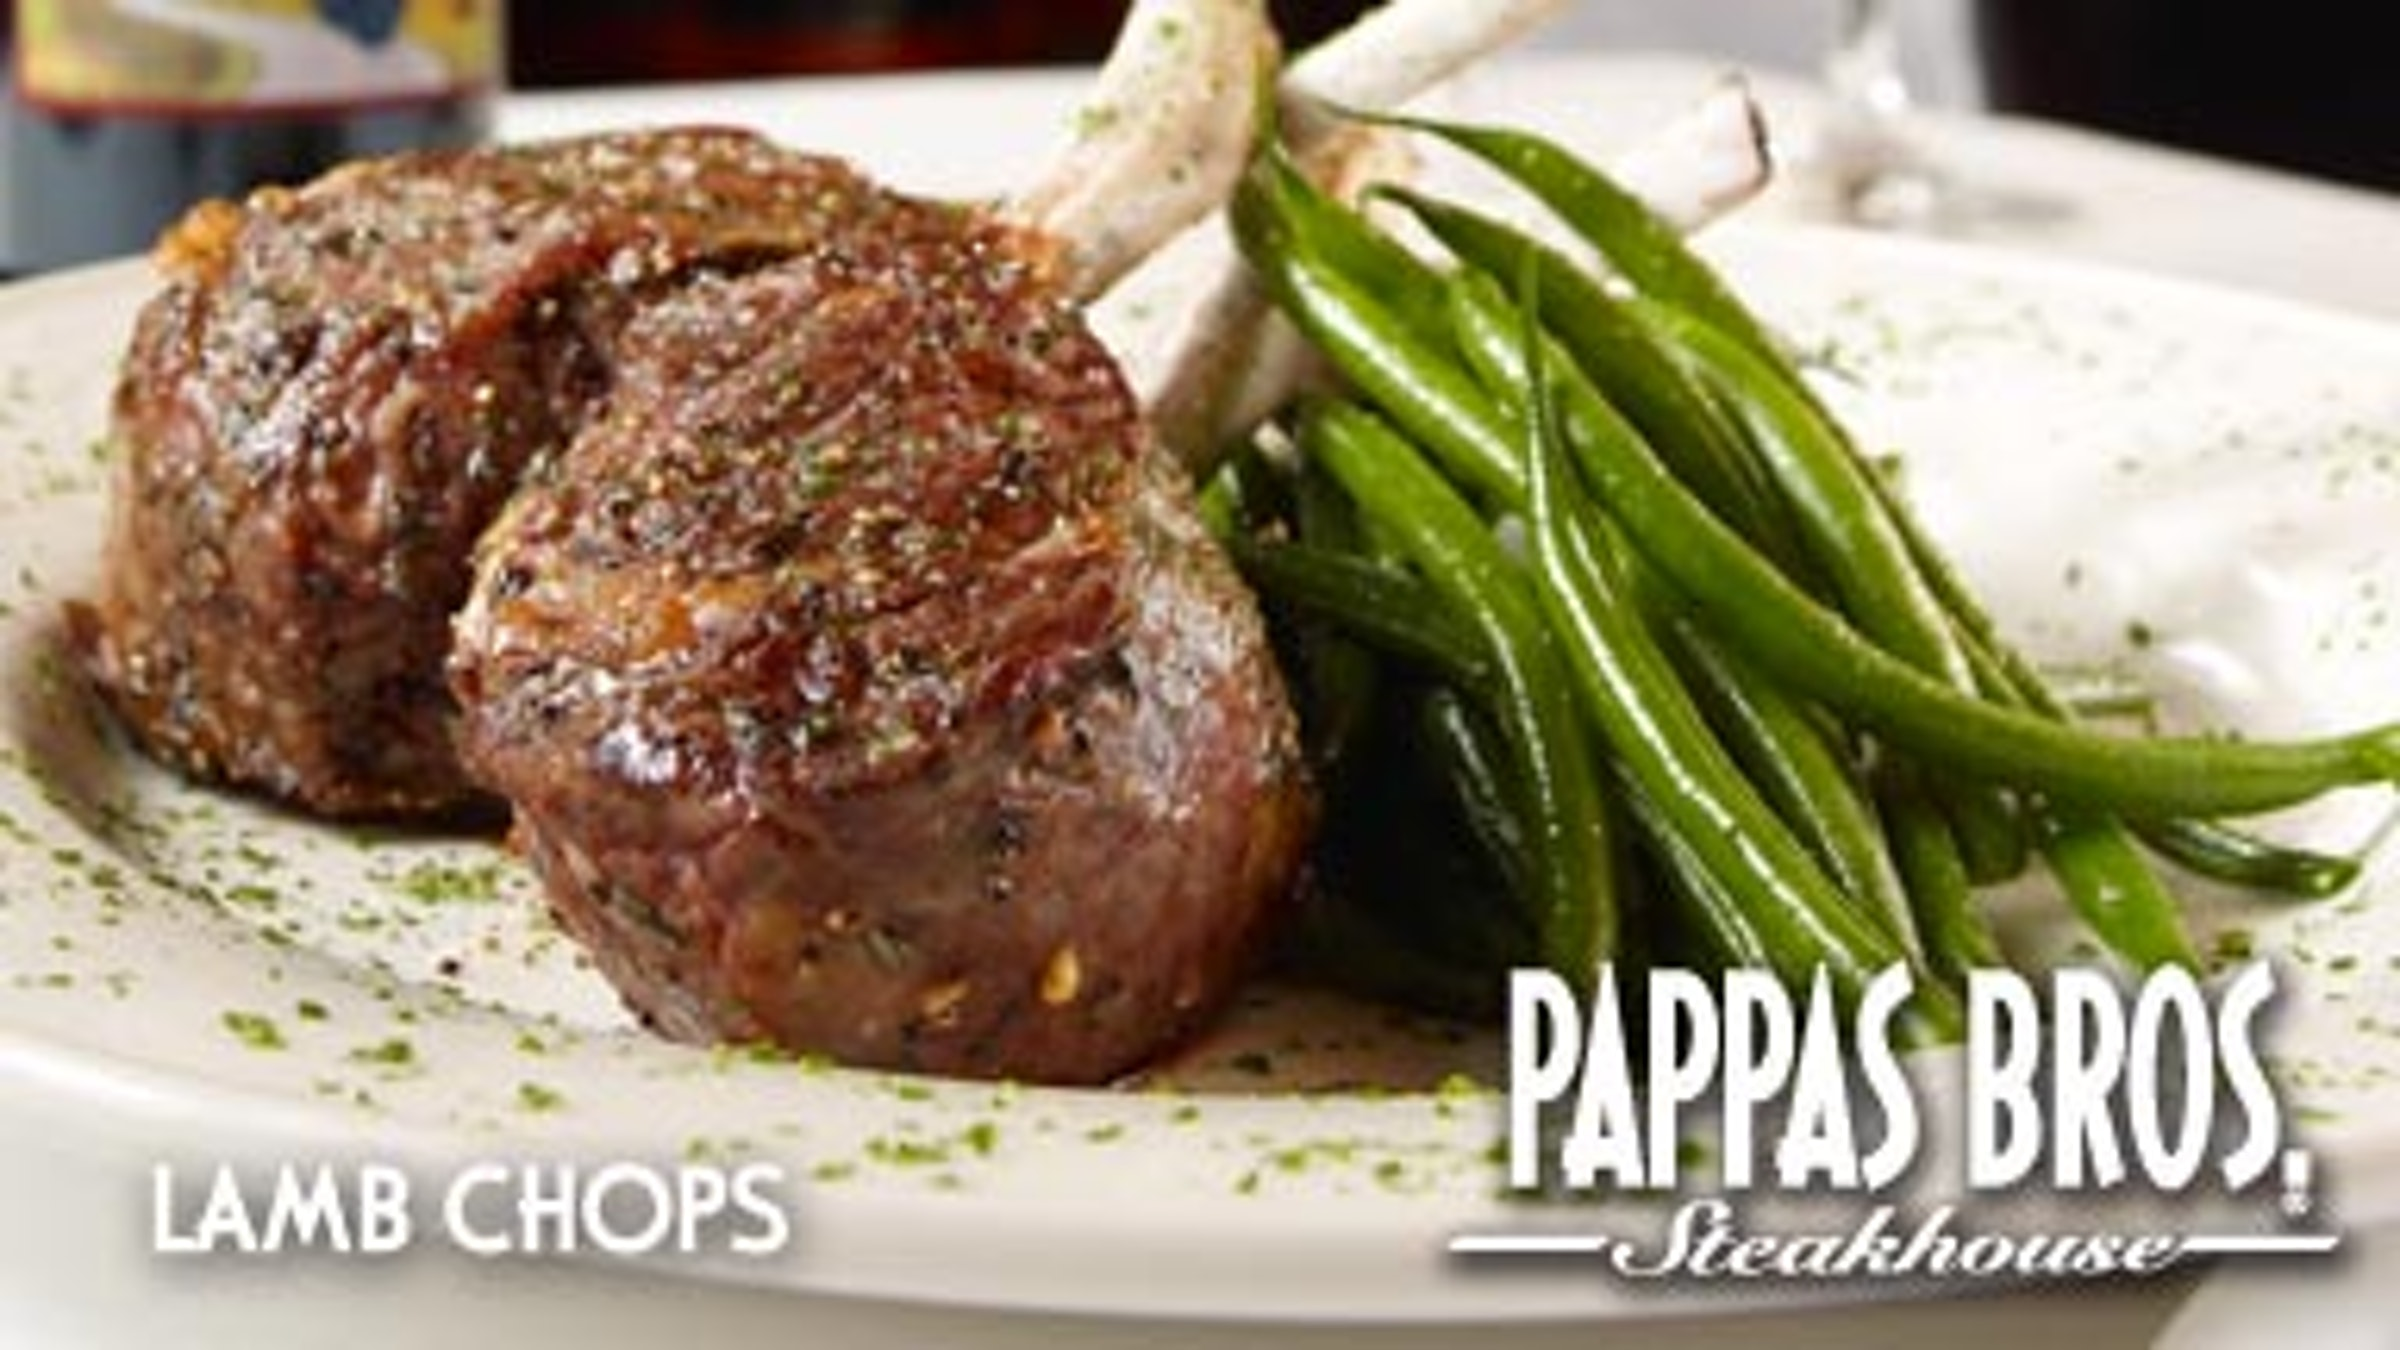 Pappas Bros. Steakhouse in Beyond Dallas